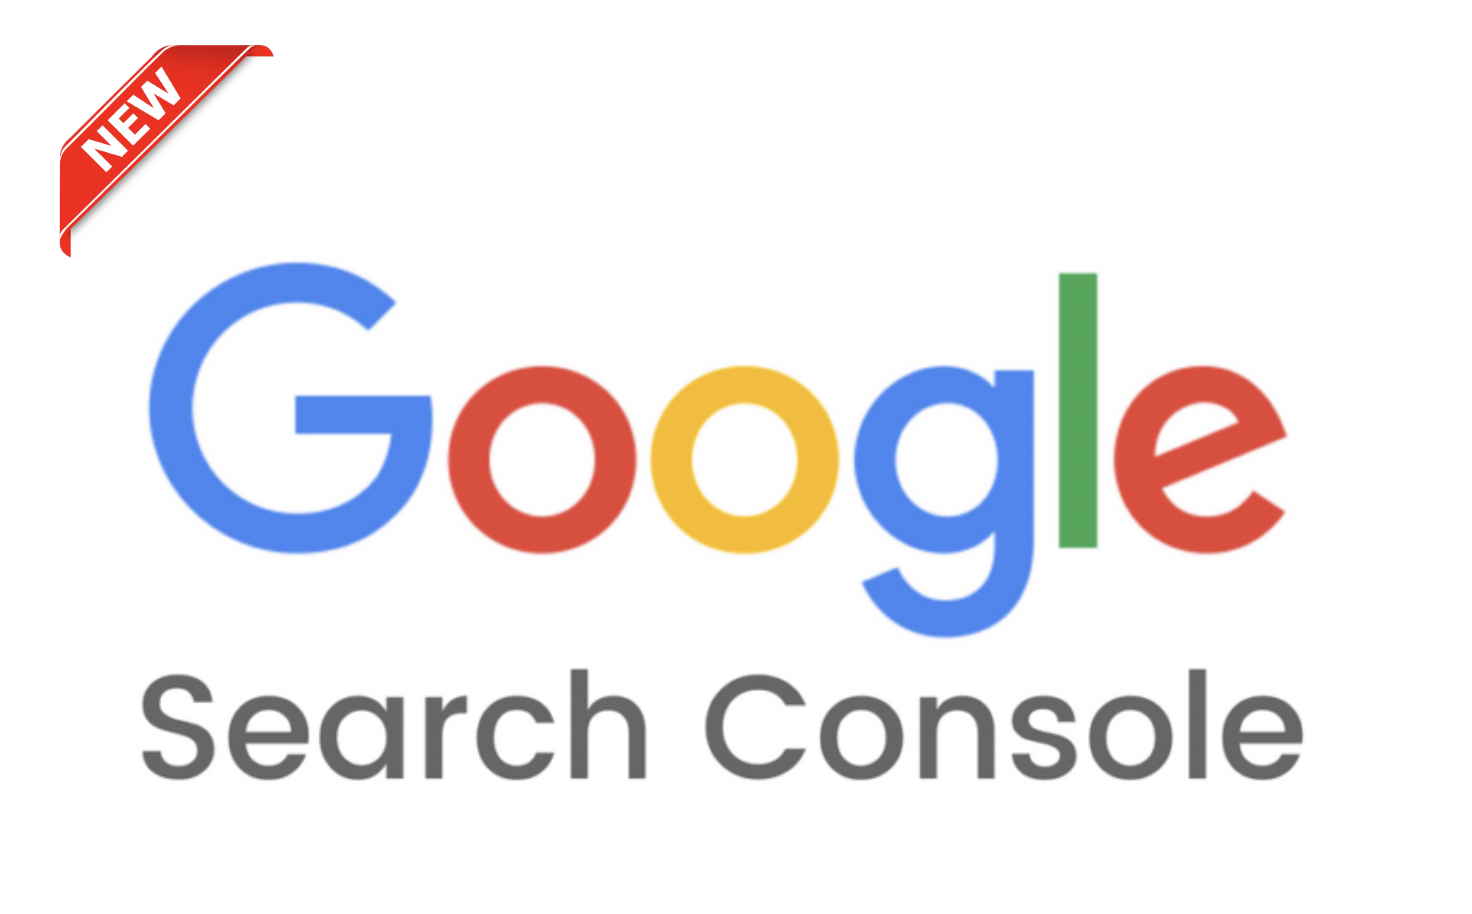 The New Google Search Console